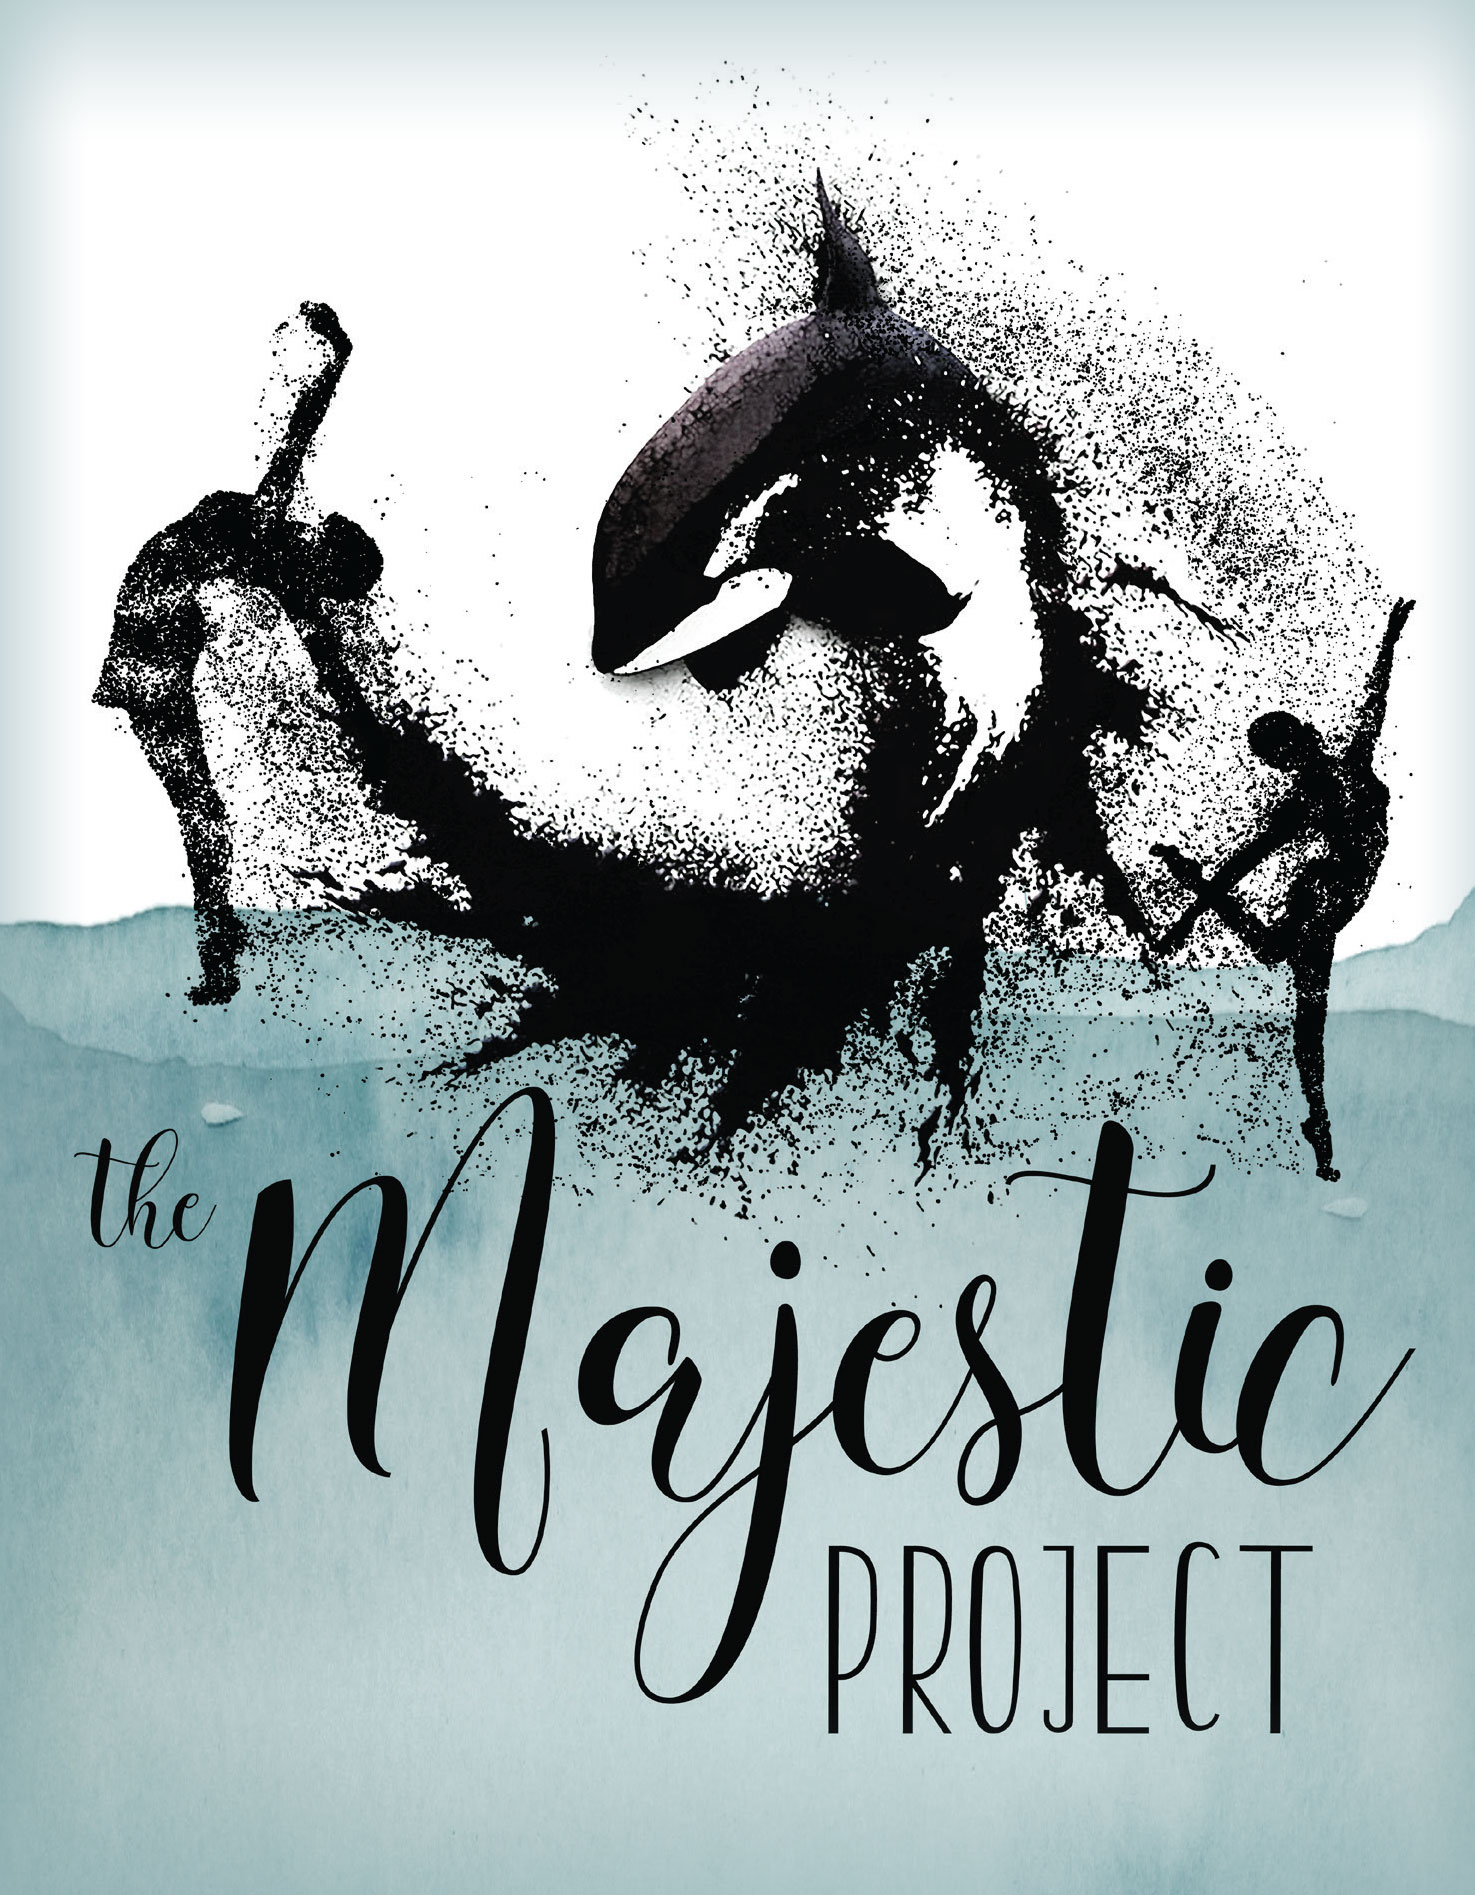 The Majestic Project - 2017